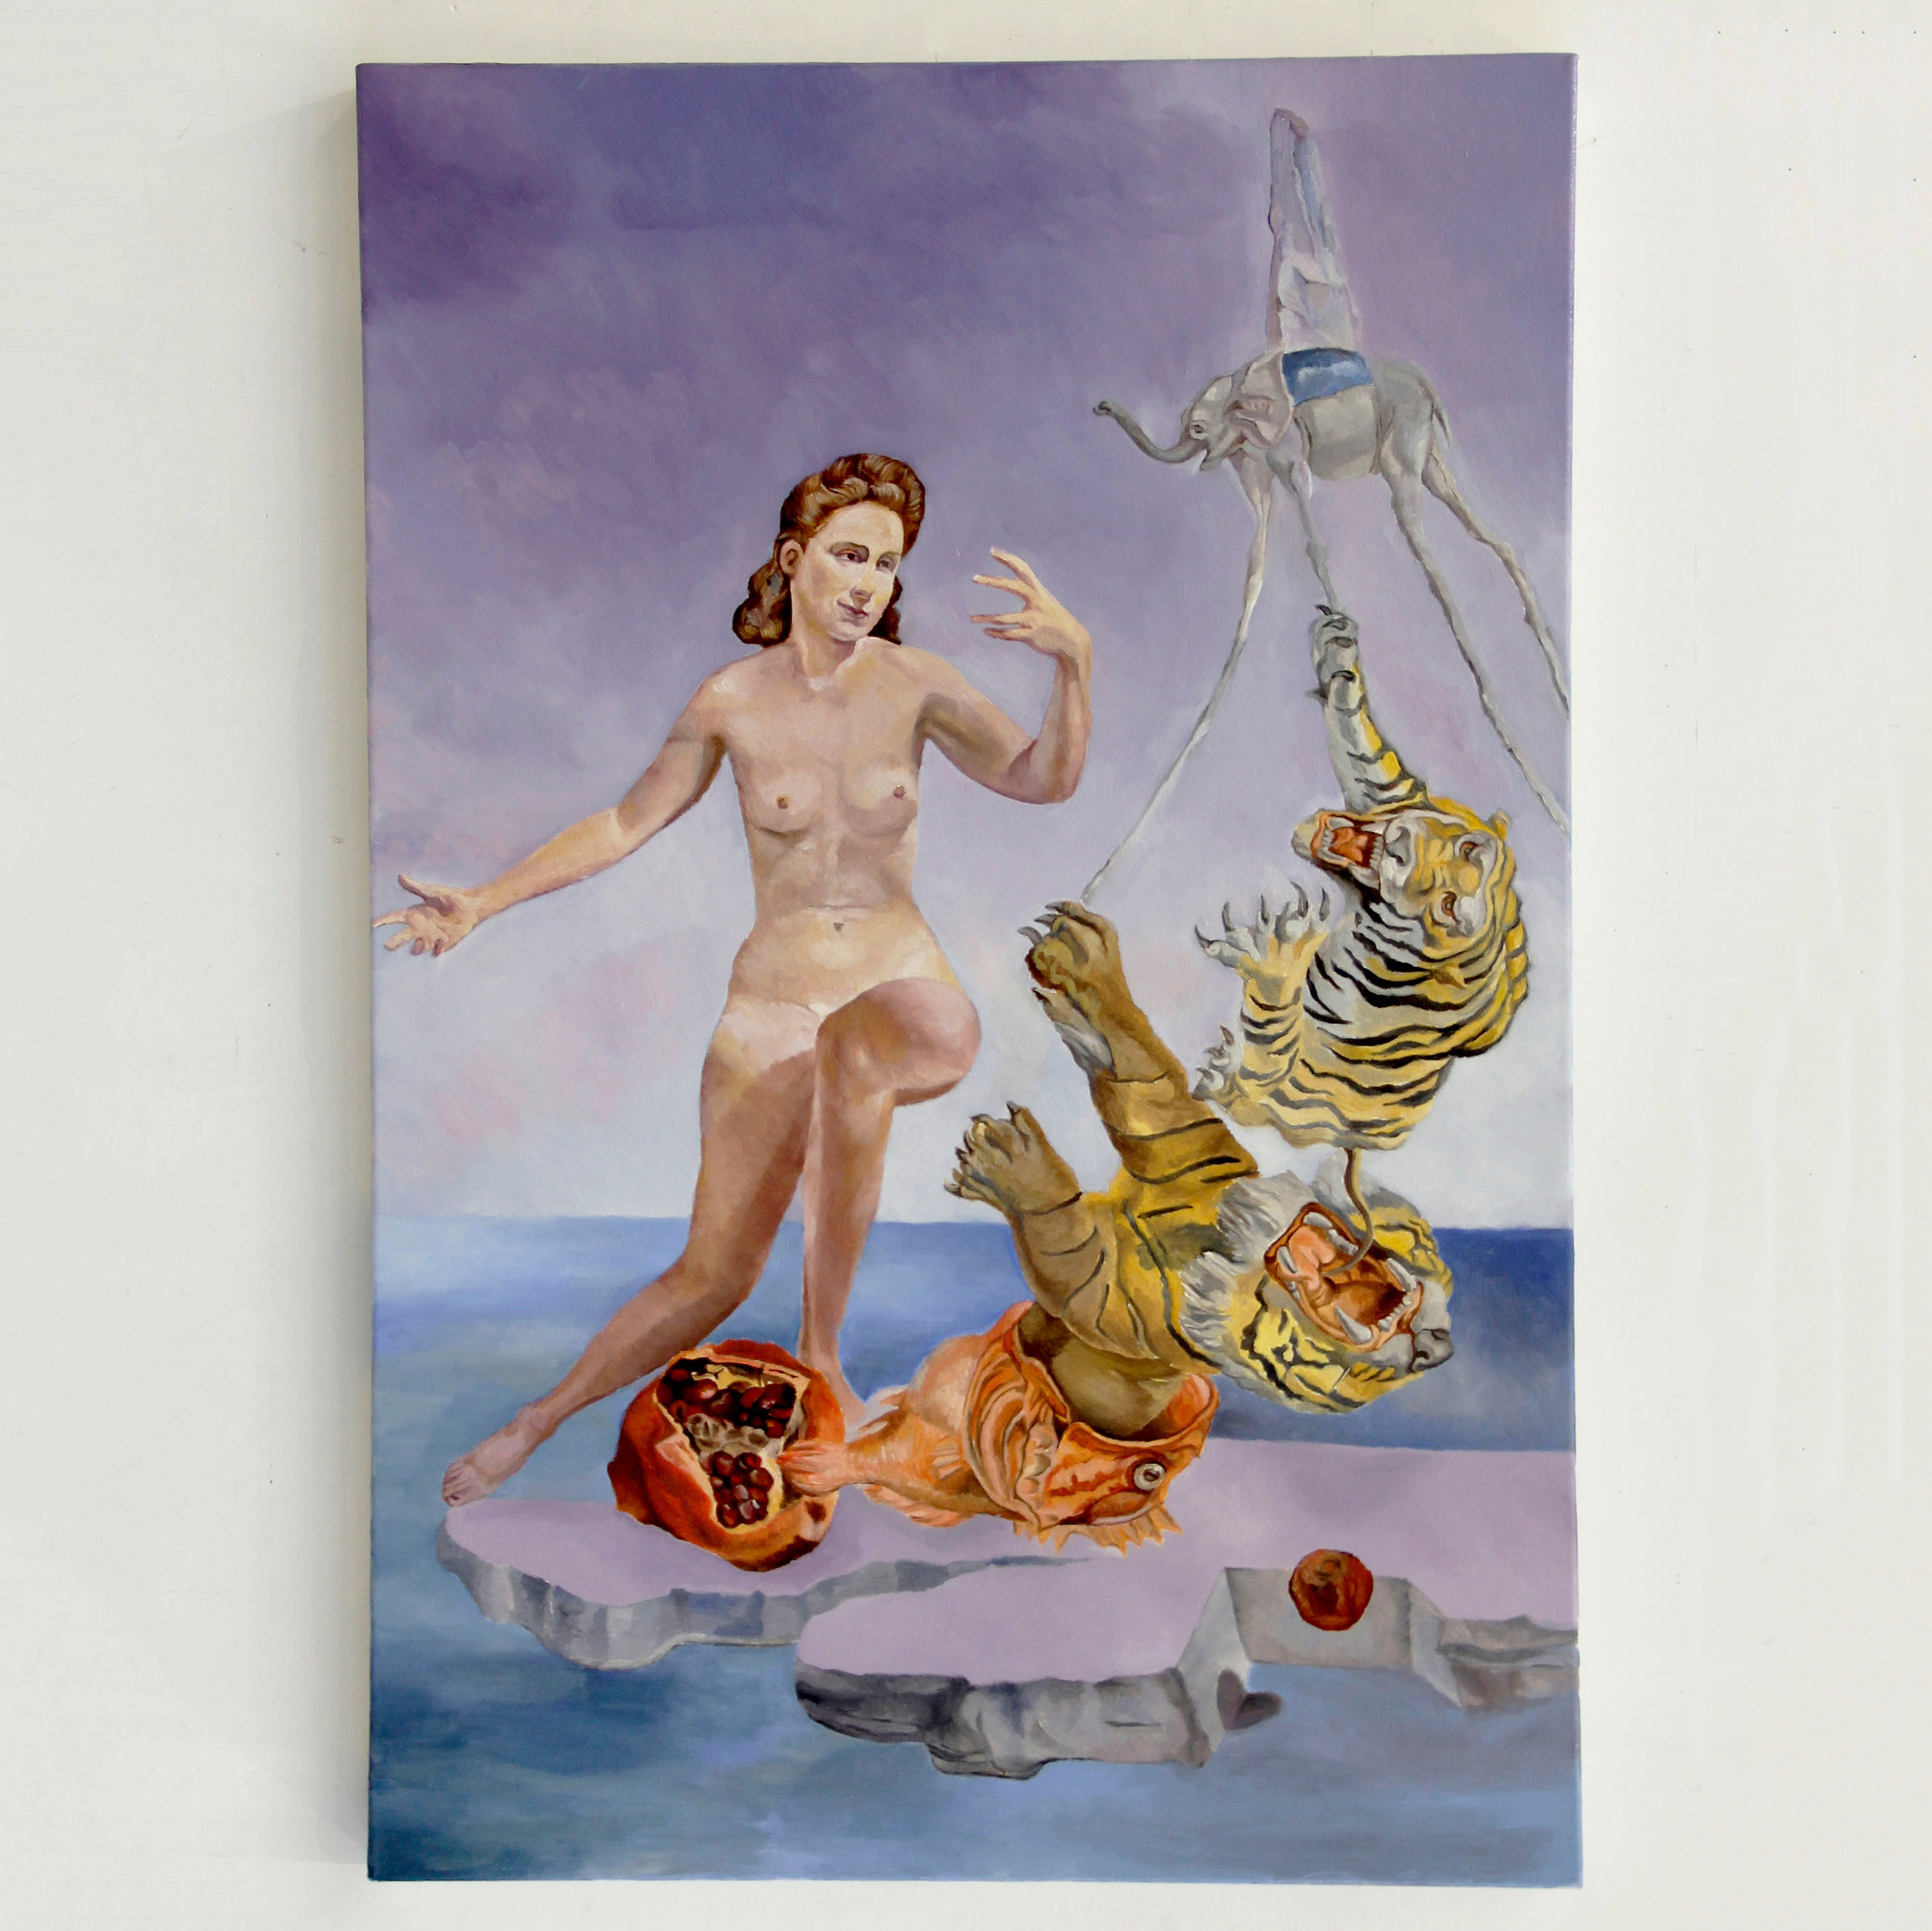 Dream Caused by Feminine Power of Gala Around a Pomegranate a Second Before Being Attacked | 芸術作品